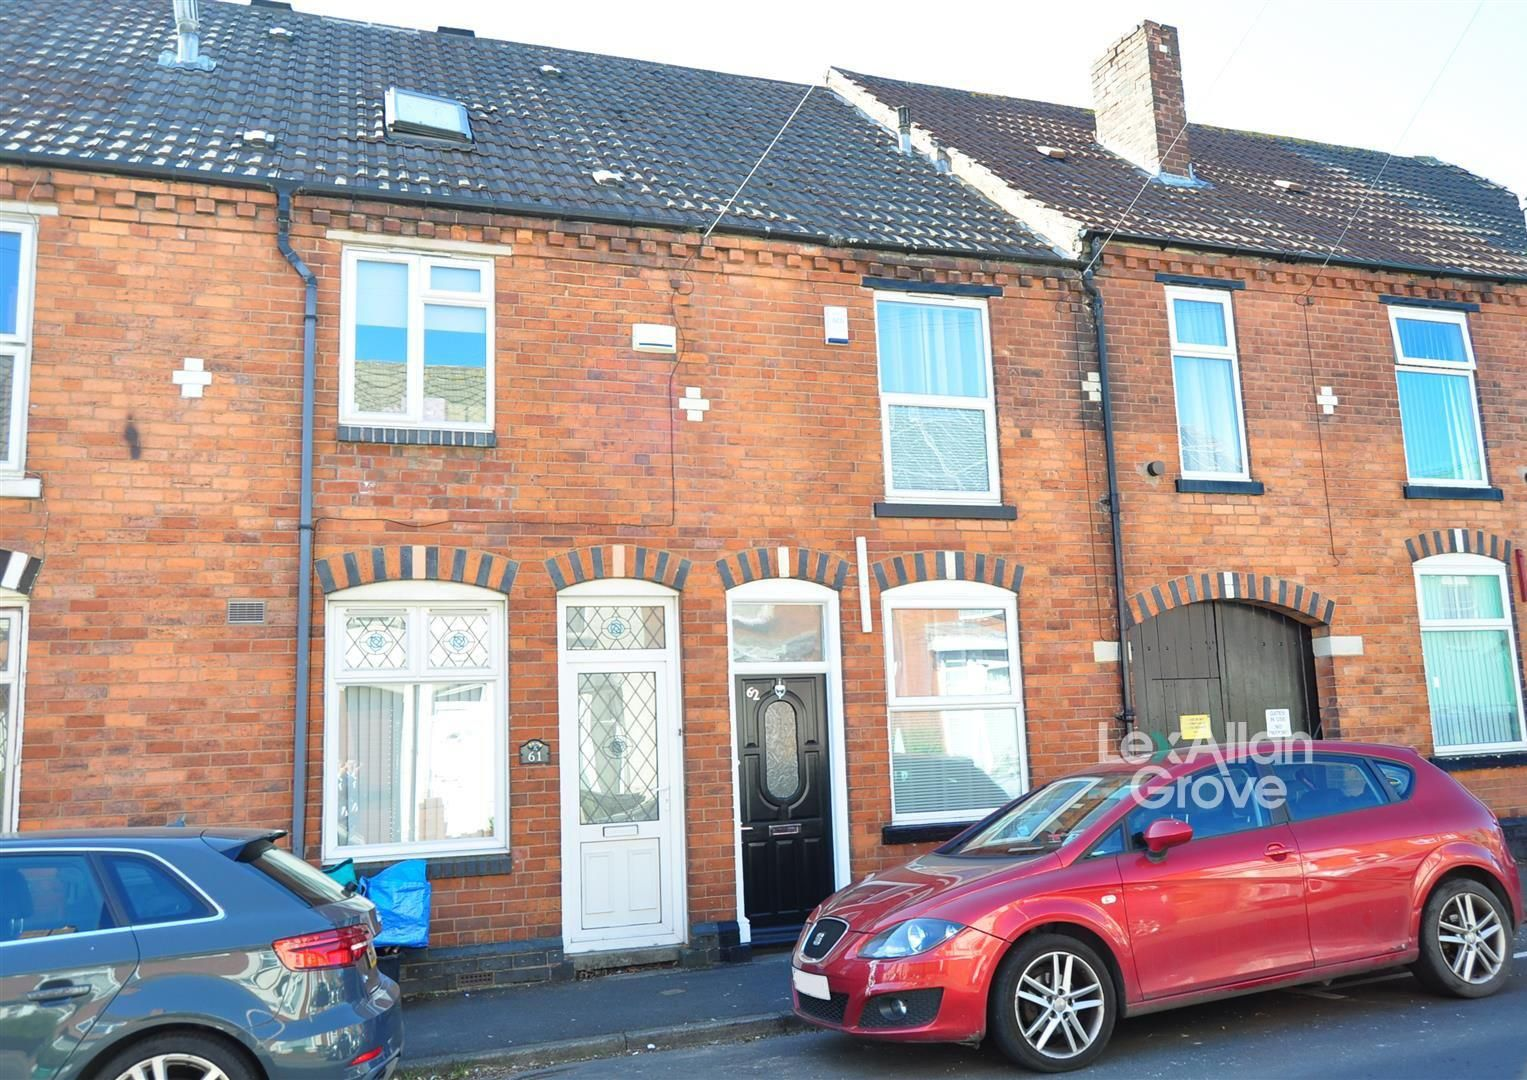 3 bed terraced for sale, B62